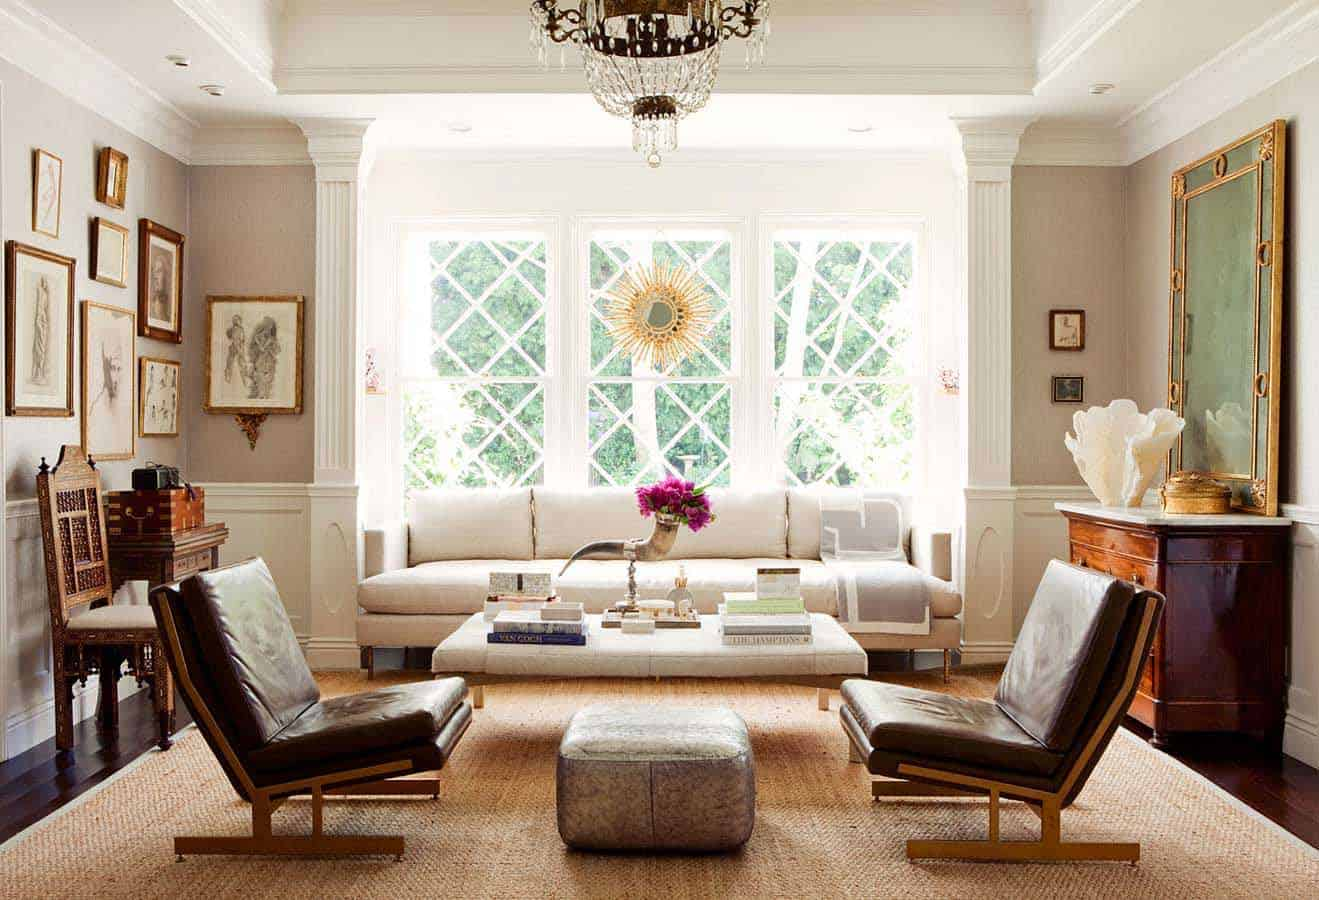 Arranging living room furniture kristina wolf design for Sitting room arrangement